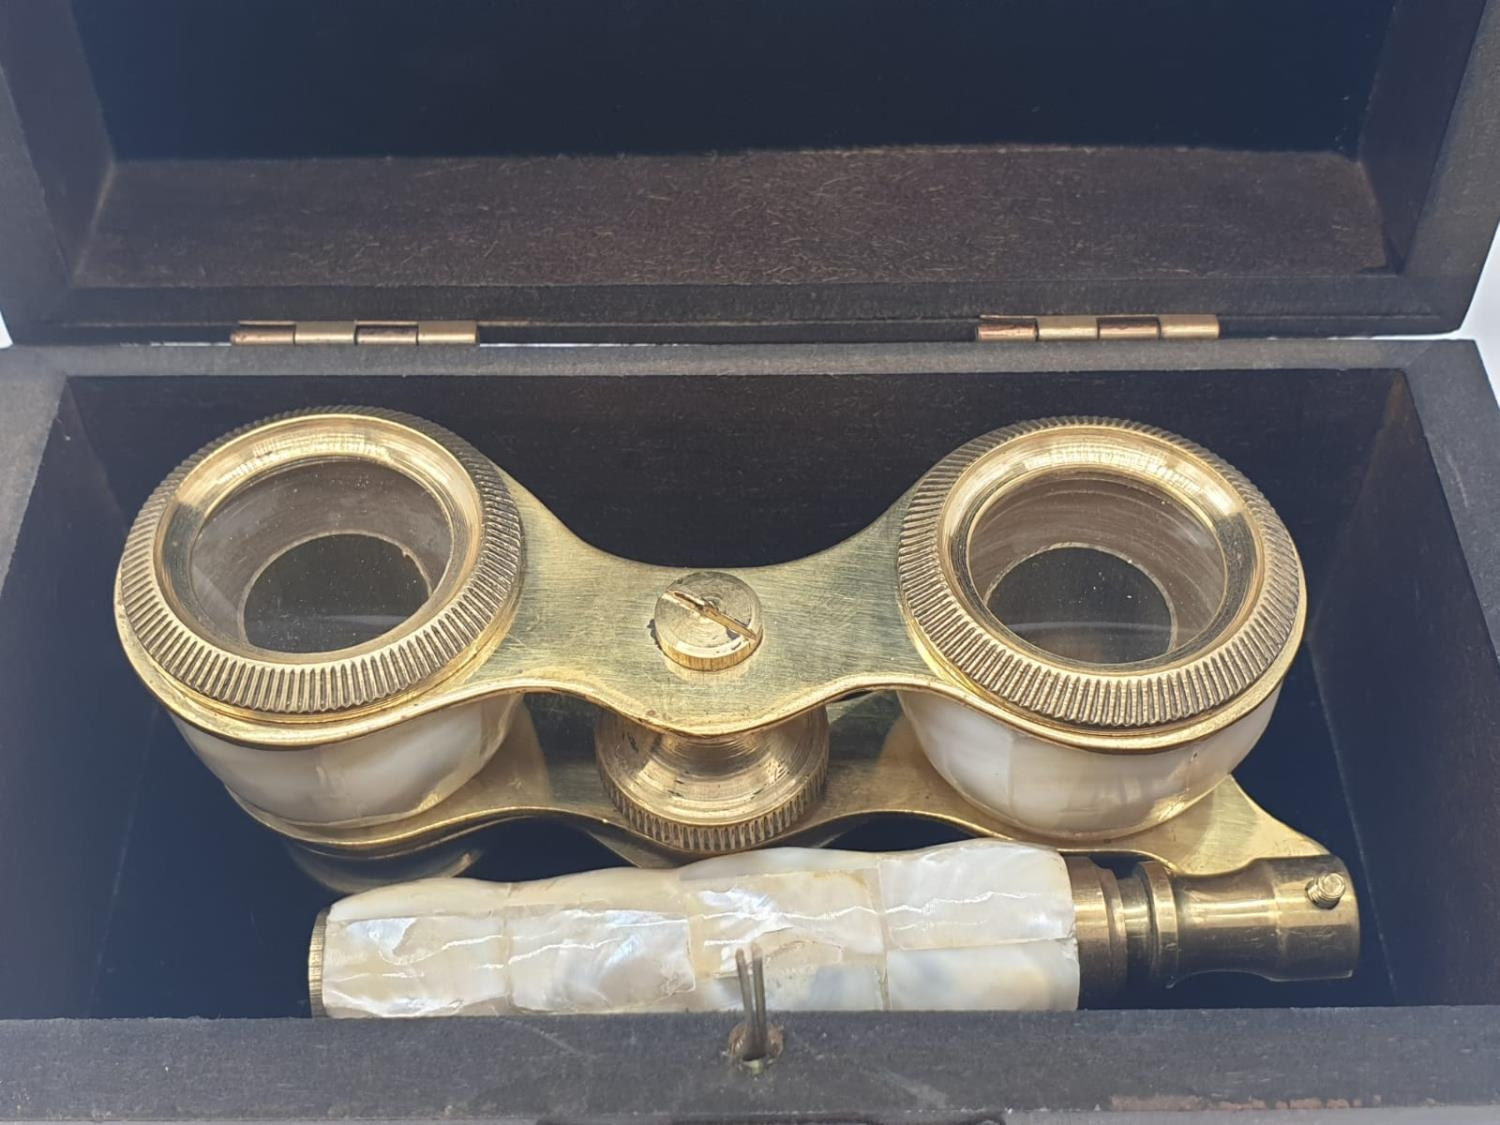 1920's Mother of Pearl & Brass opera glasses with folding handle, in wooden box. 13x7cm. - Image 2 of 9